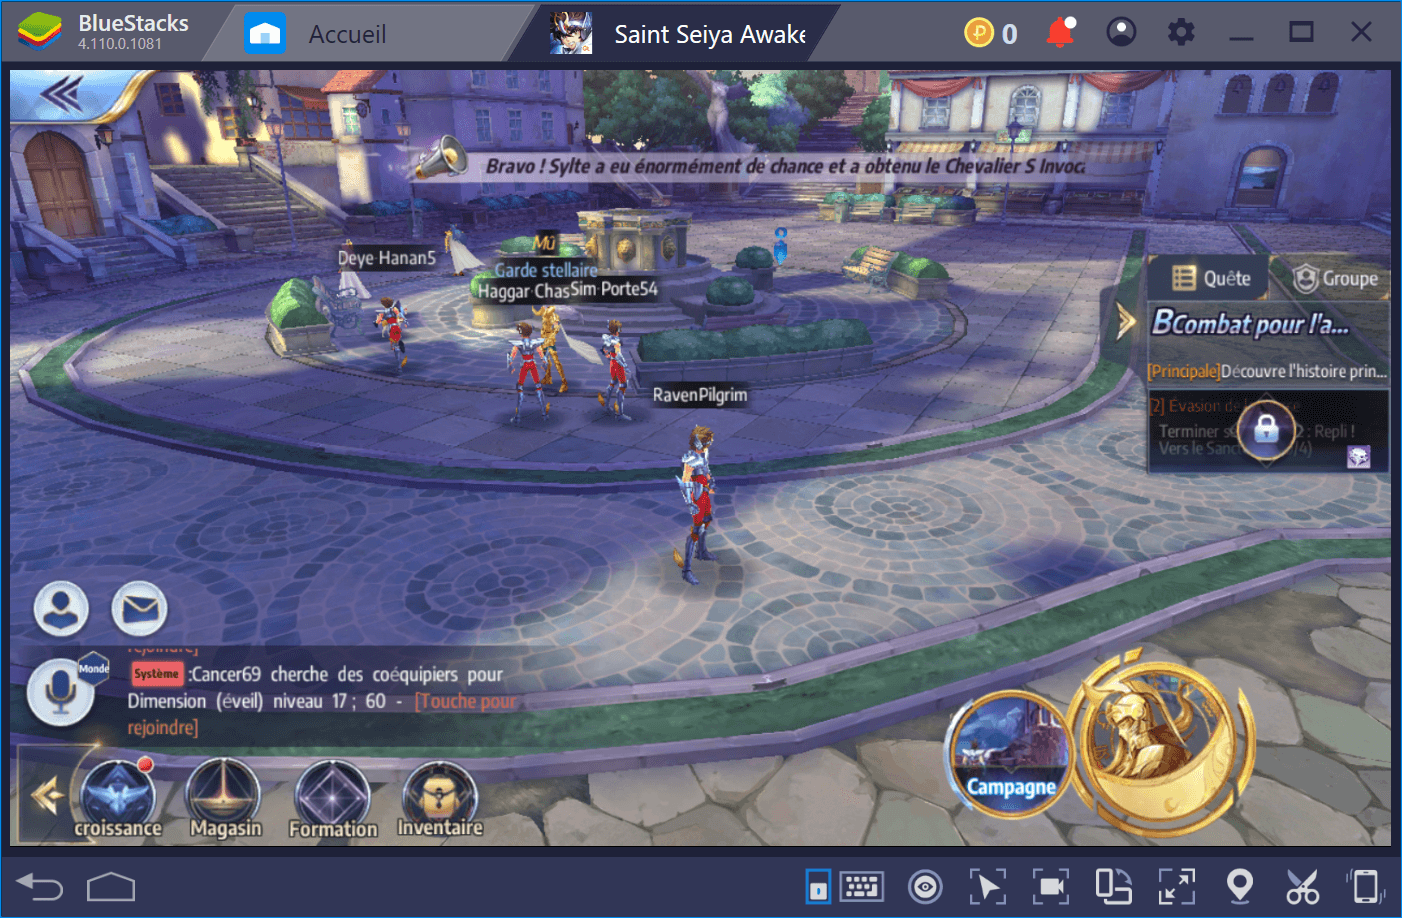 Saint Seiya Awakening : Comment y jouer sur BlueStacks